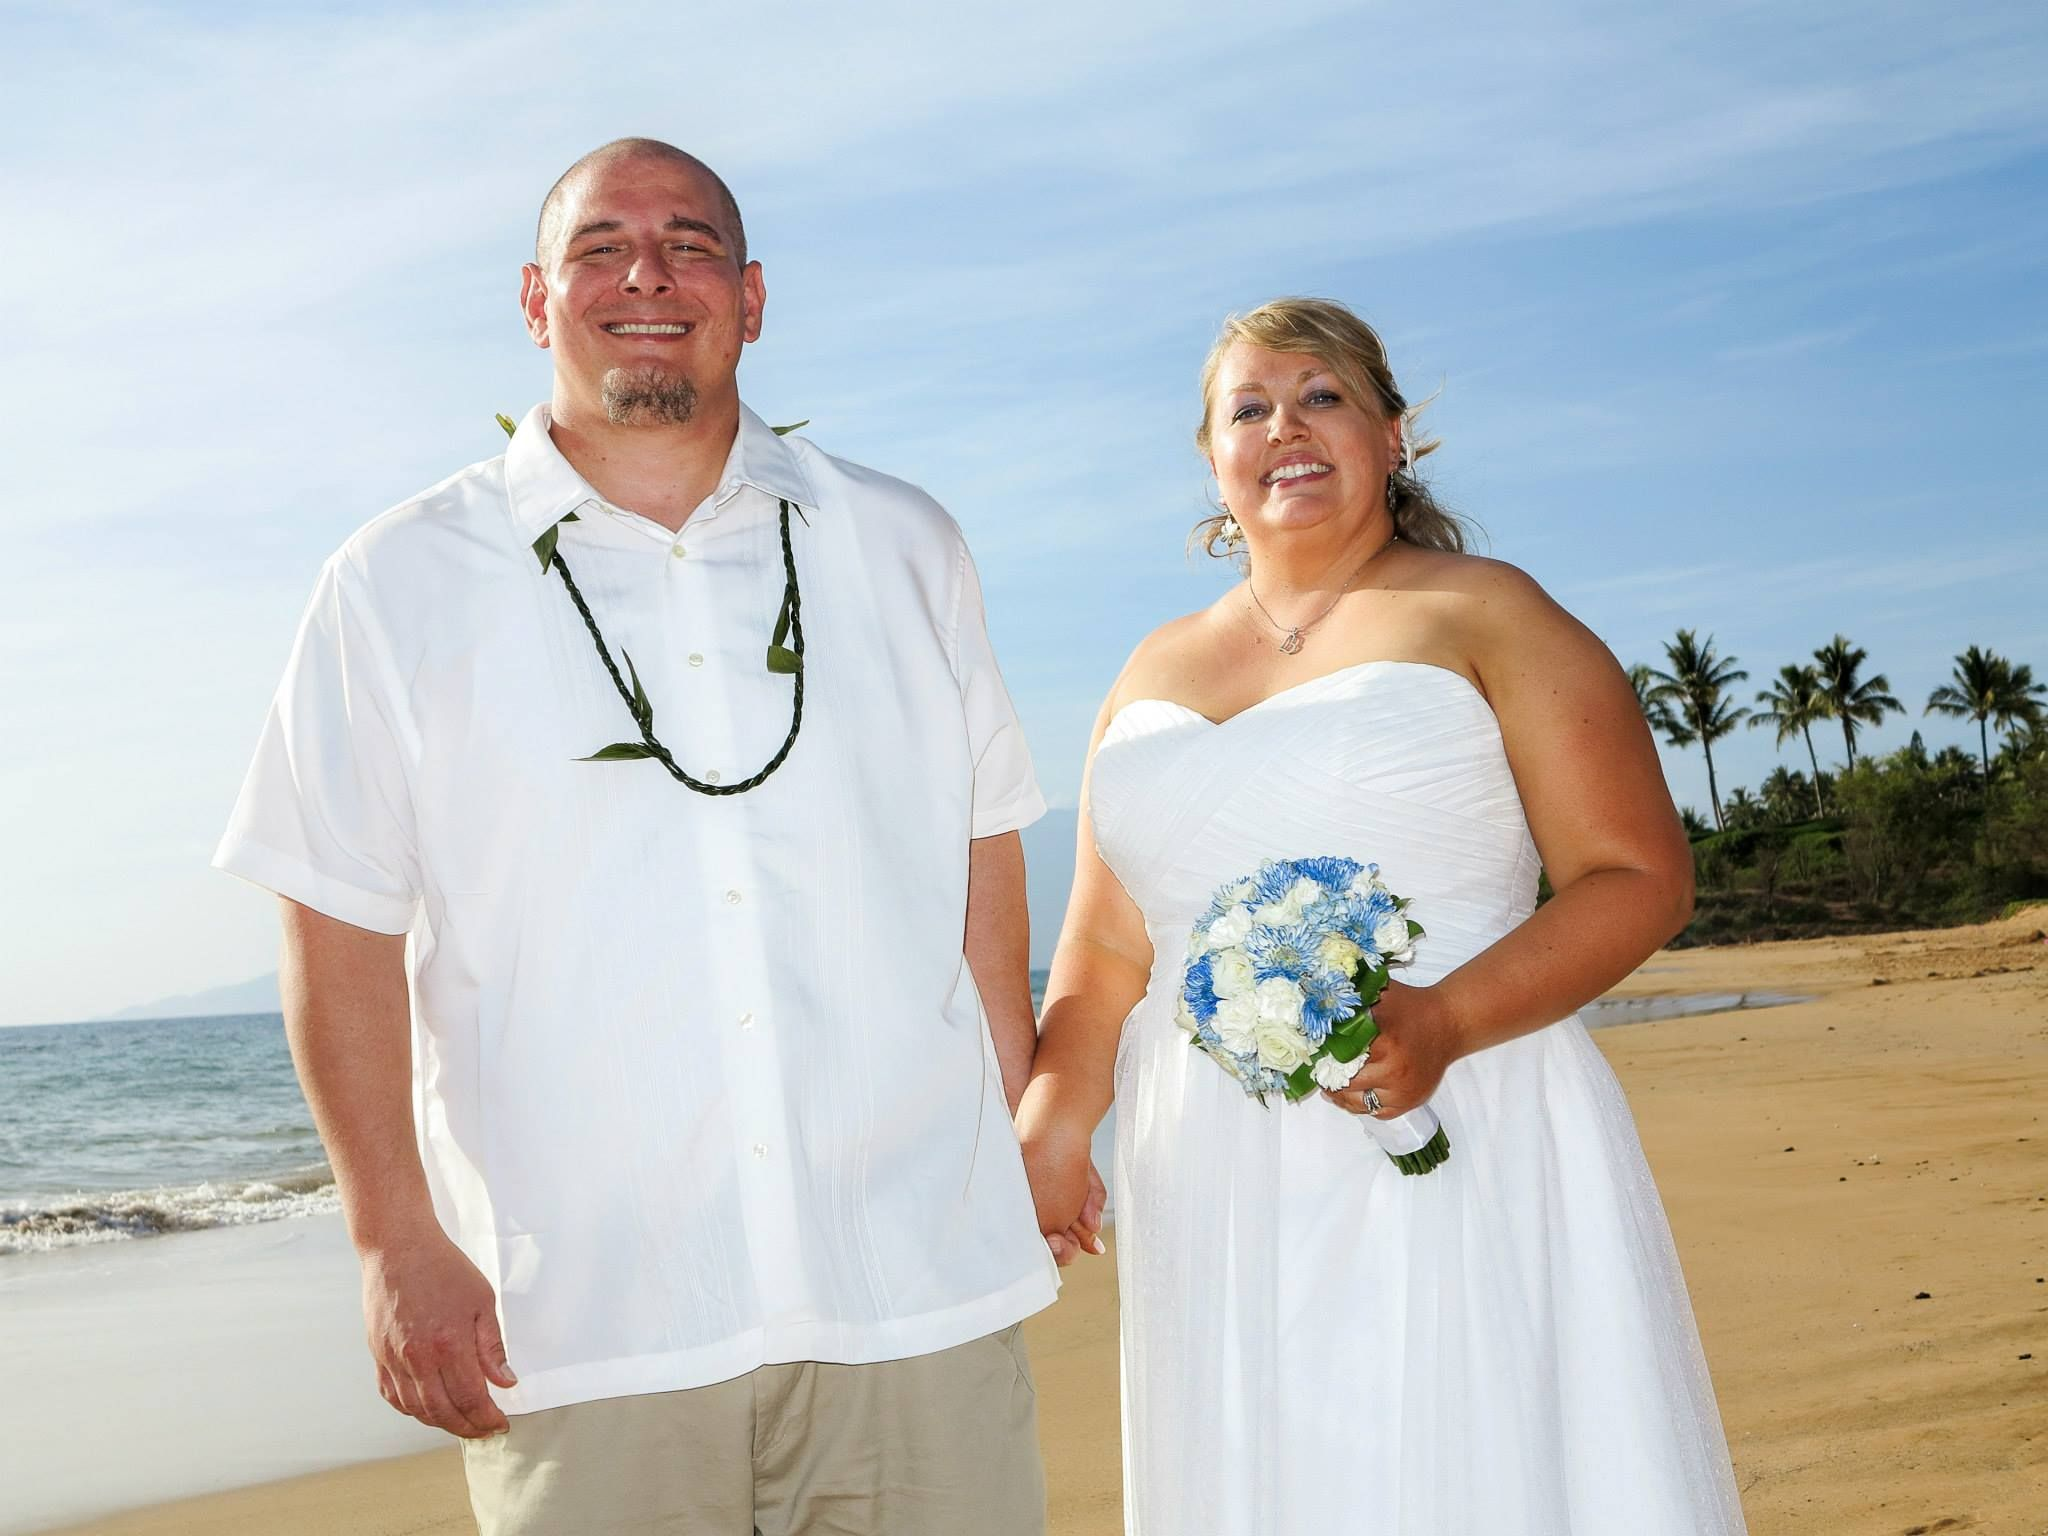 Dream Weddings Hawaii Is Your Perfect Wedding Planner That Offers Packages At Very Affordable